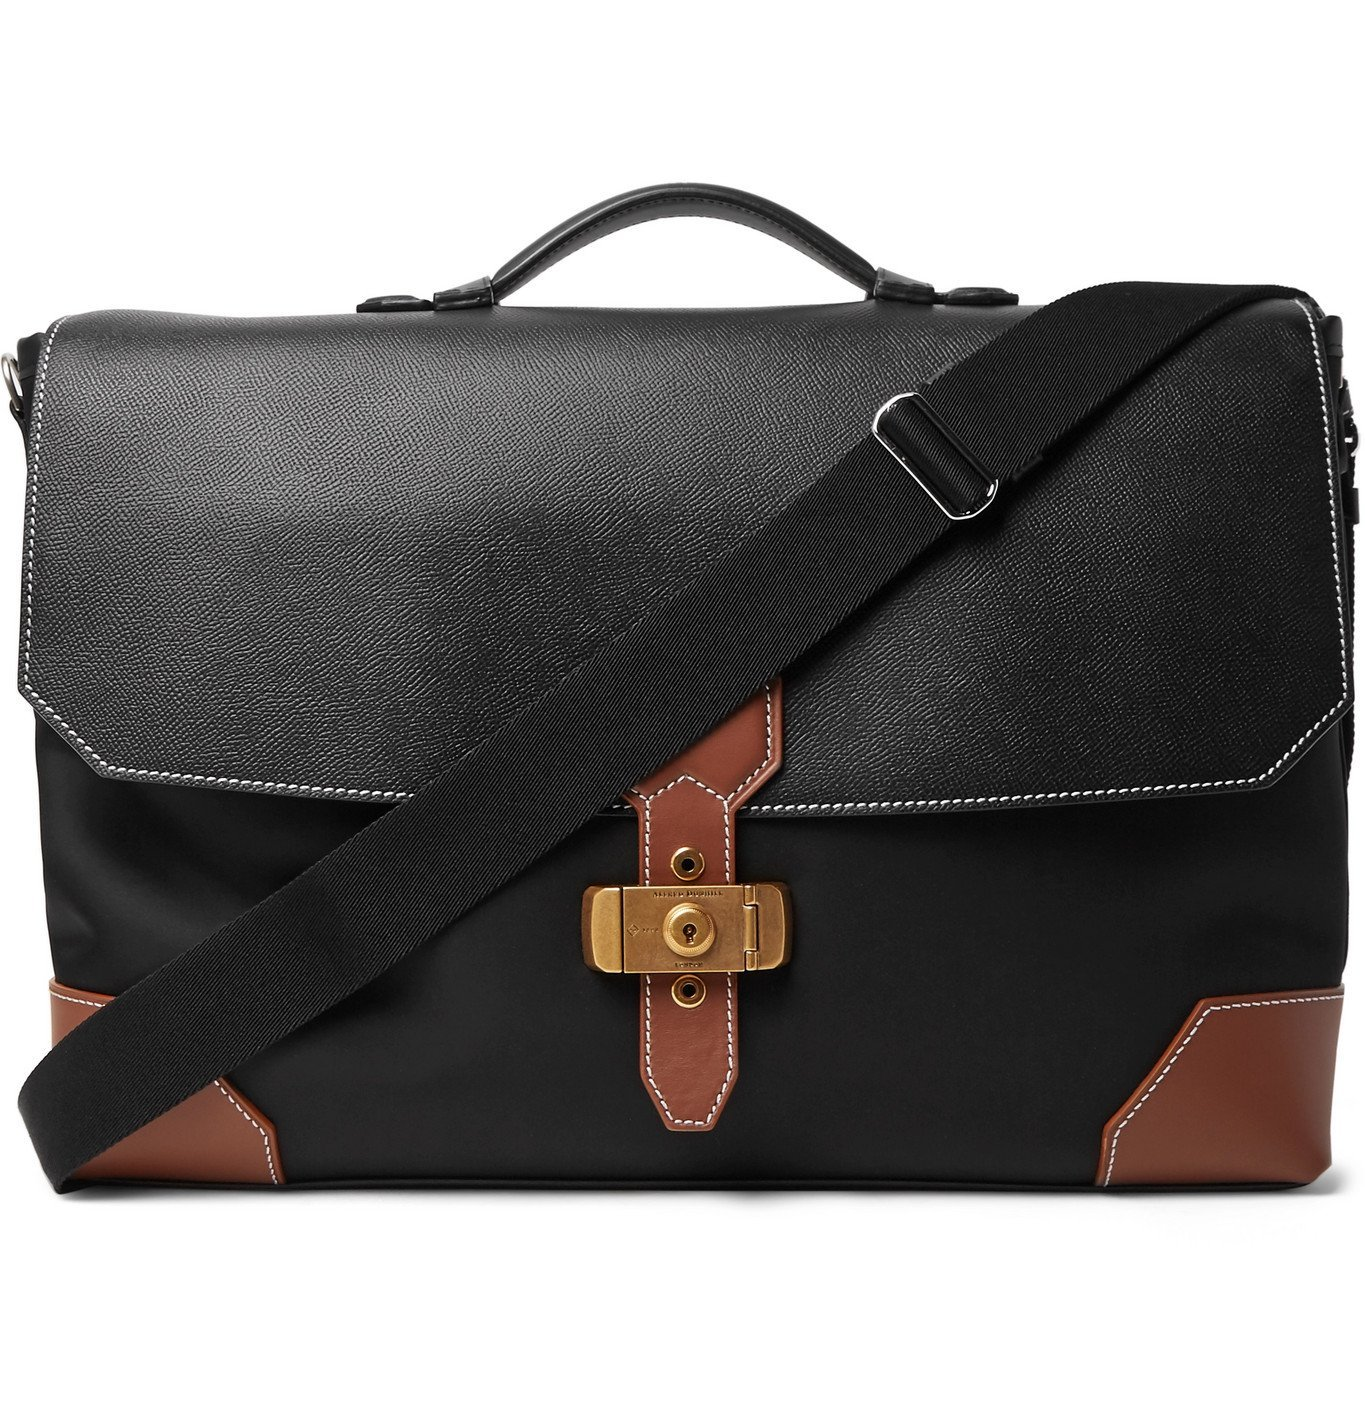 Dunhill - Nylon and Full-Grain Leather Briefcase - Black